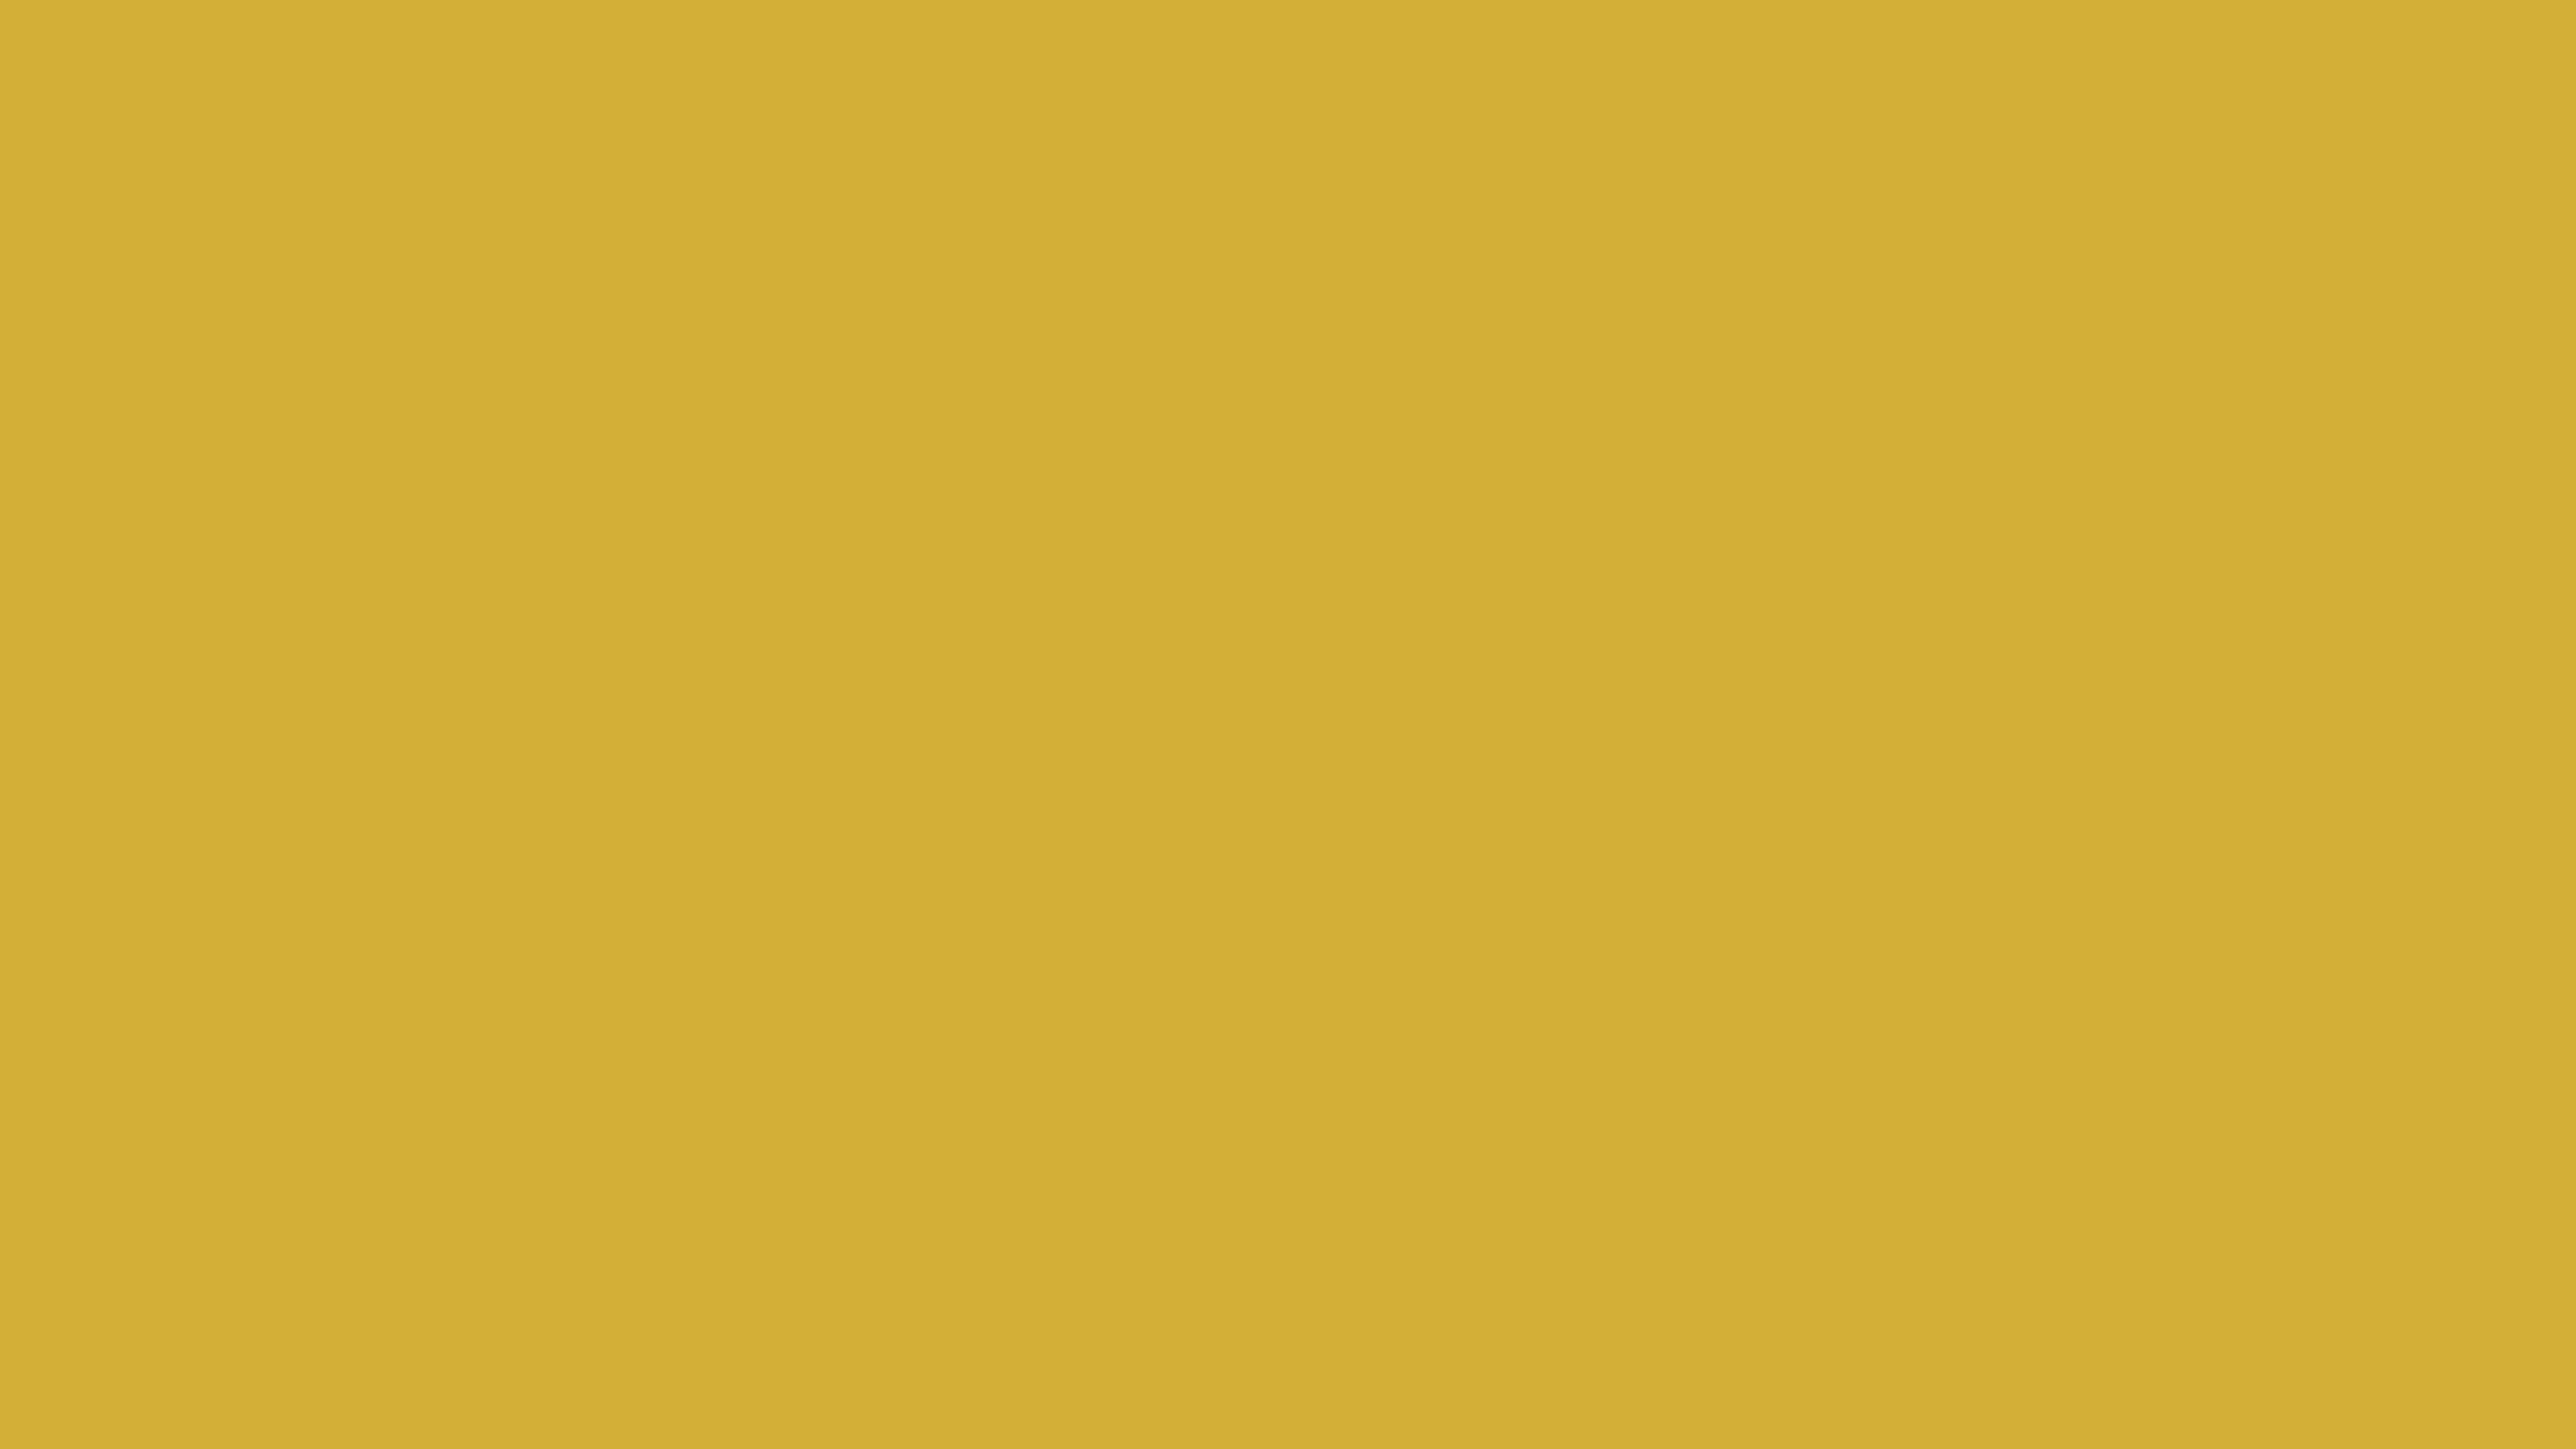 5120x2880 Gold Metallic Solid Color Background